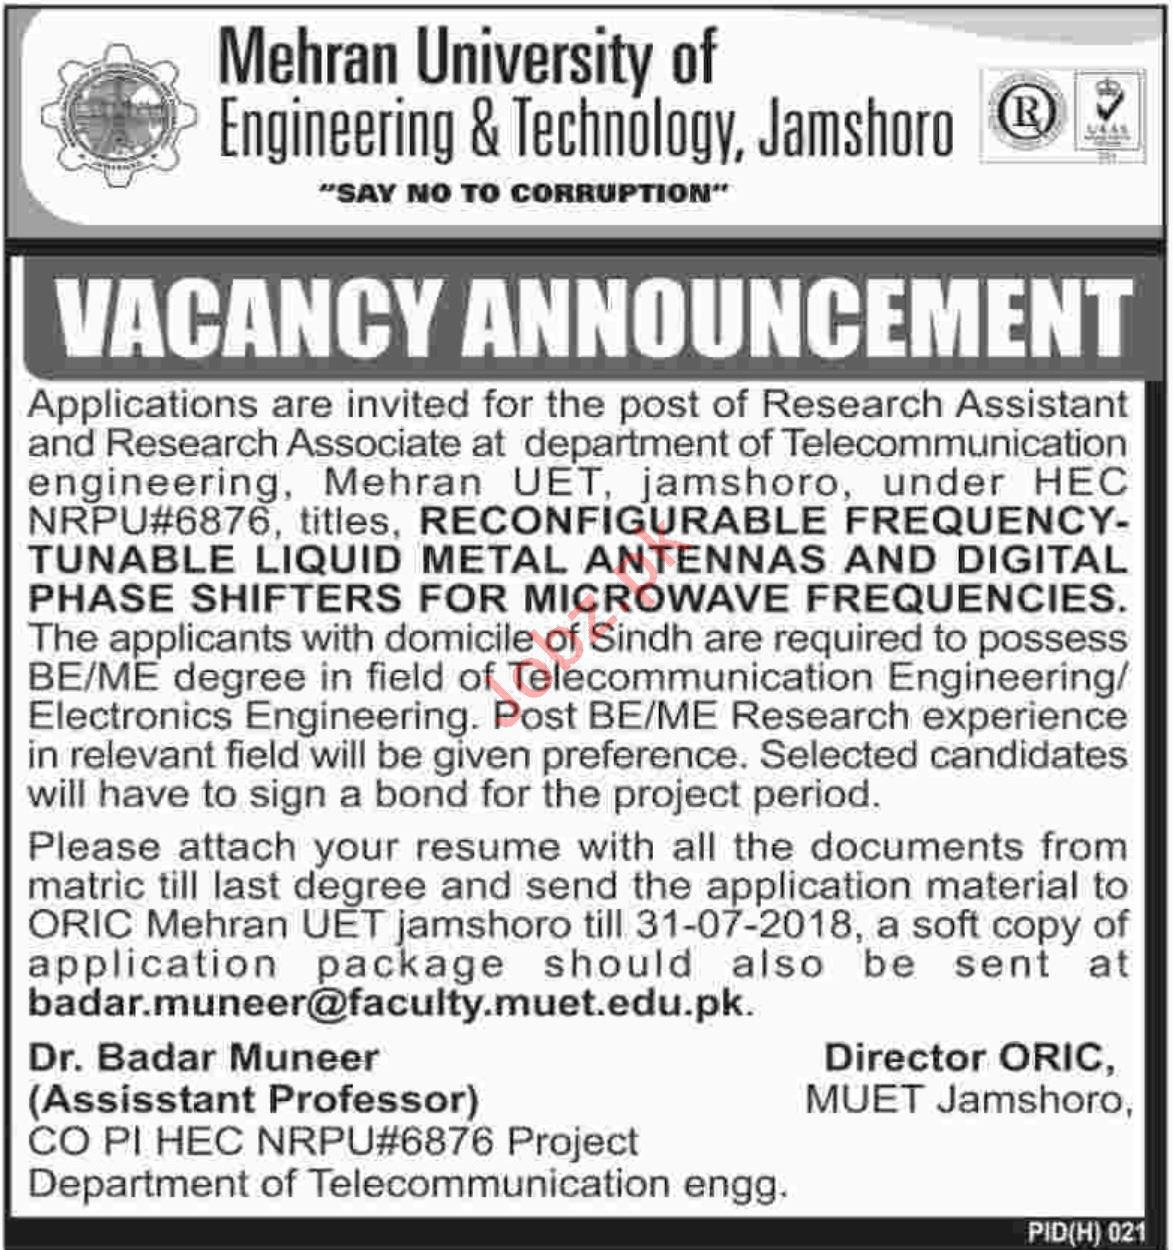 MUET Jamshoro Jobs 2018 for Research Assistant